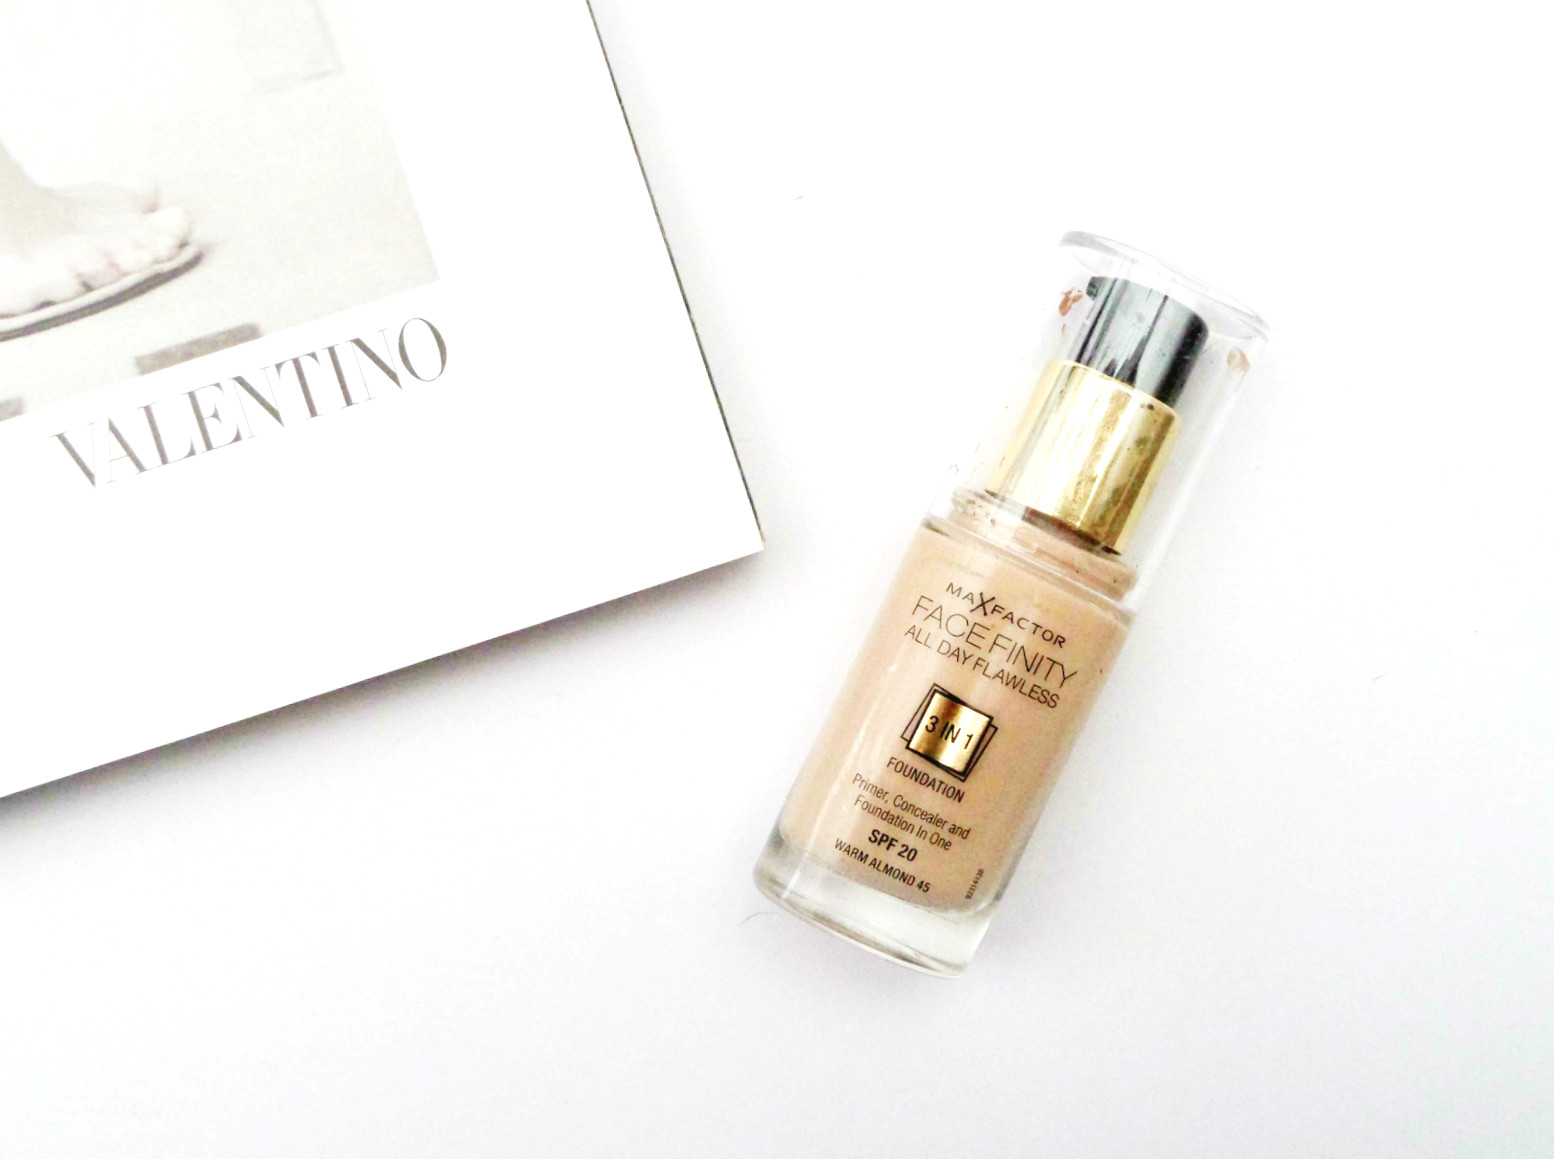 Max Factor Facefinity 3 in 1 Foundation Review